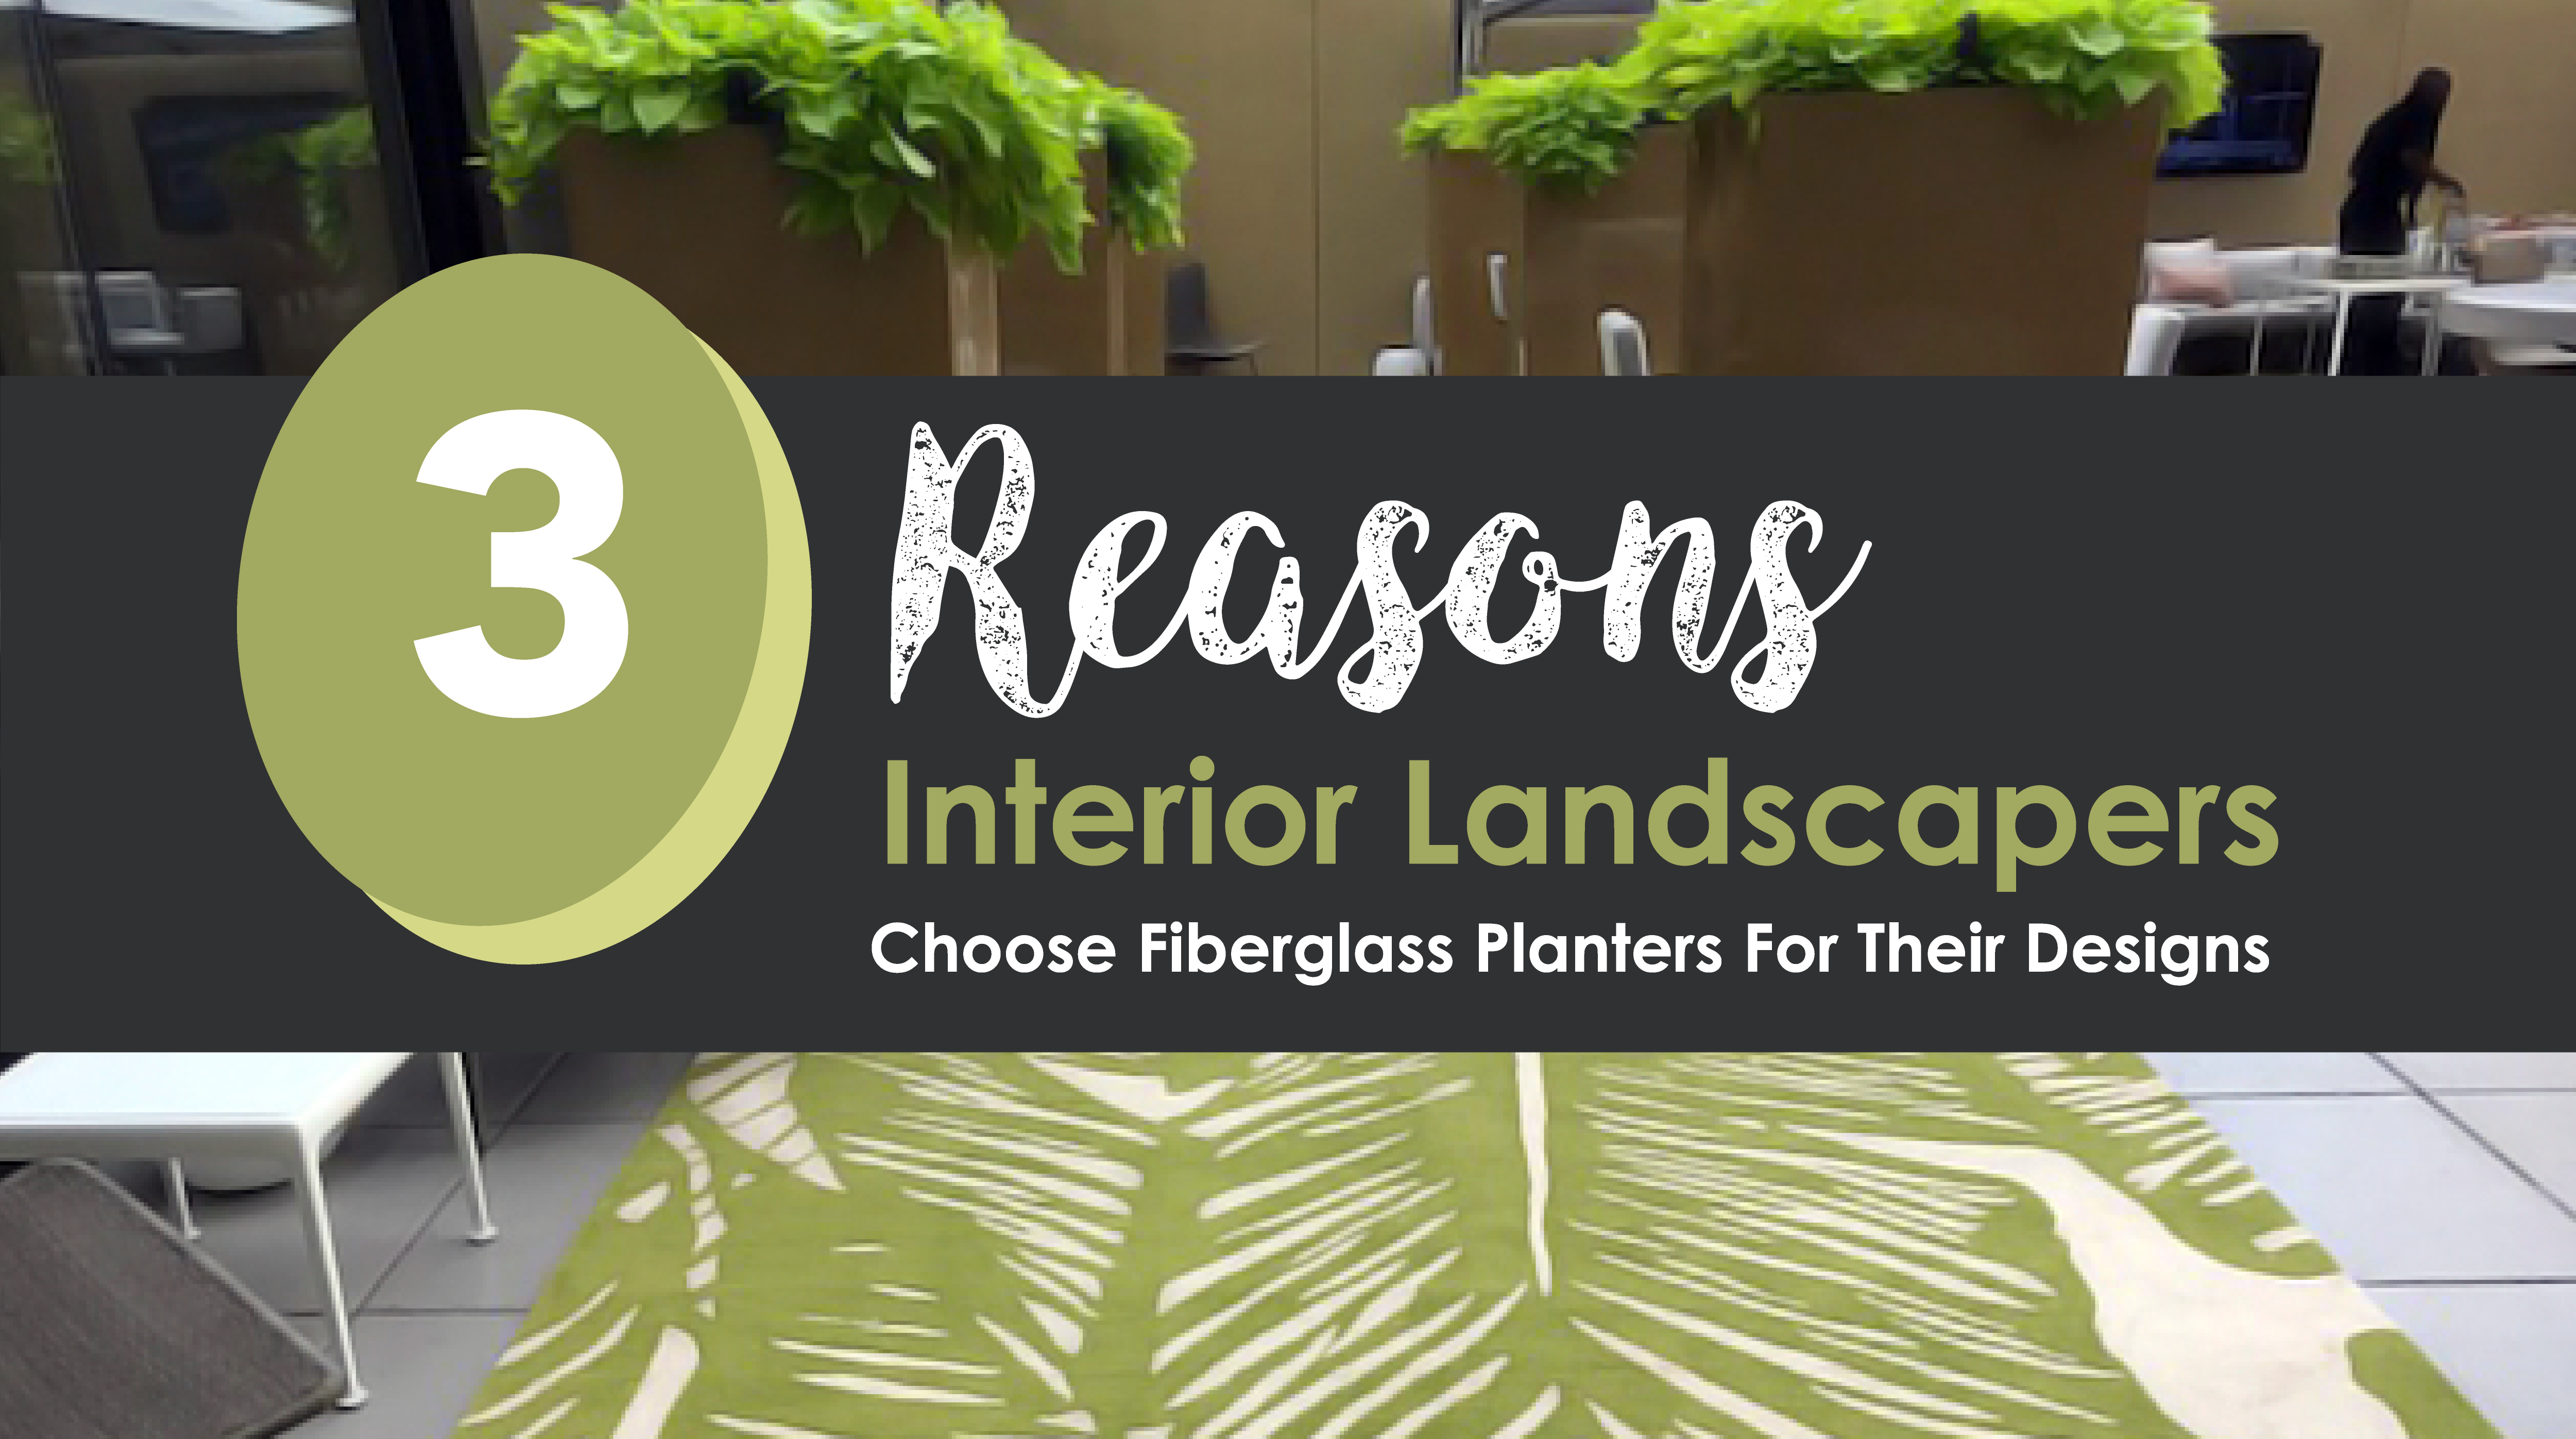 Interior Landscaping with Fiberglass Planters